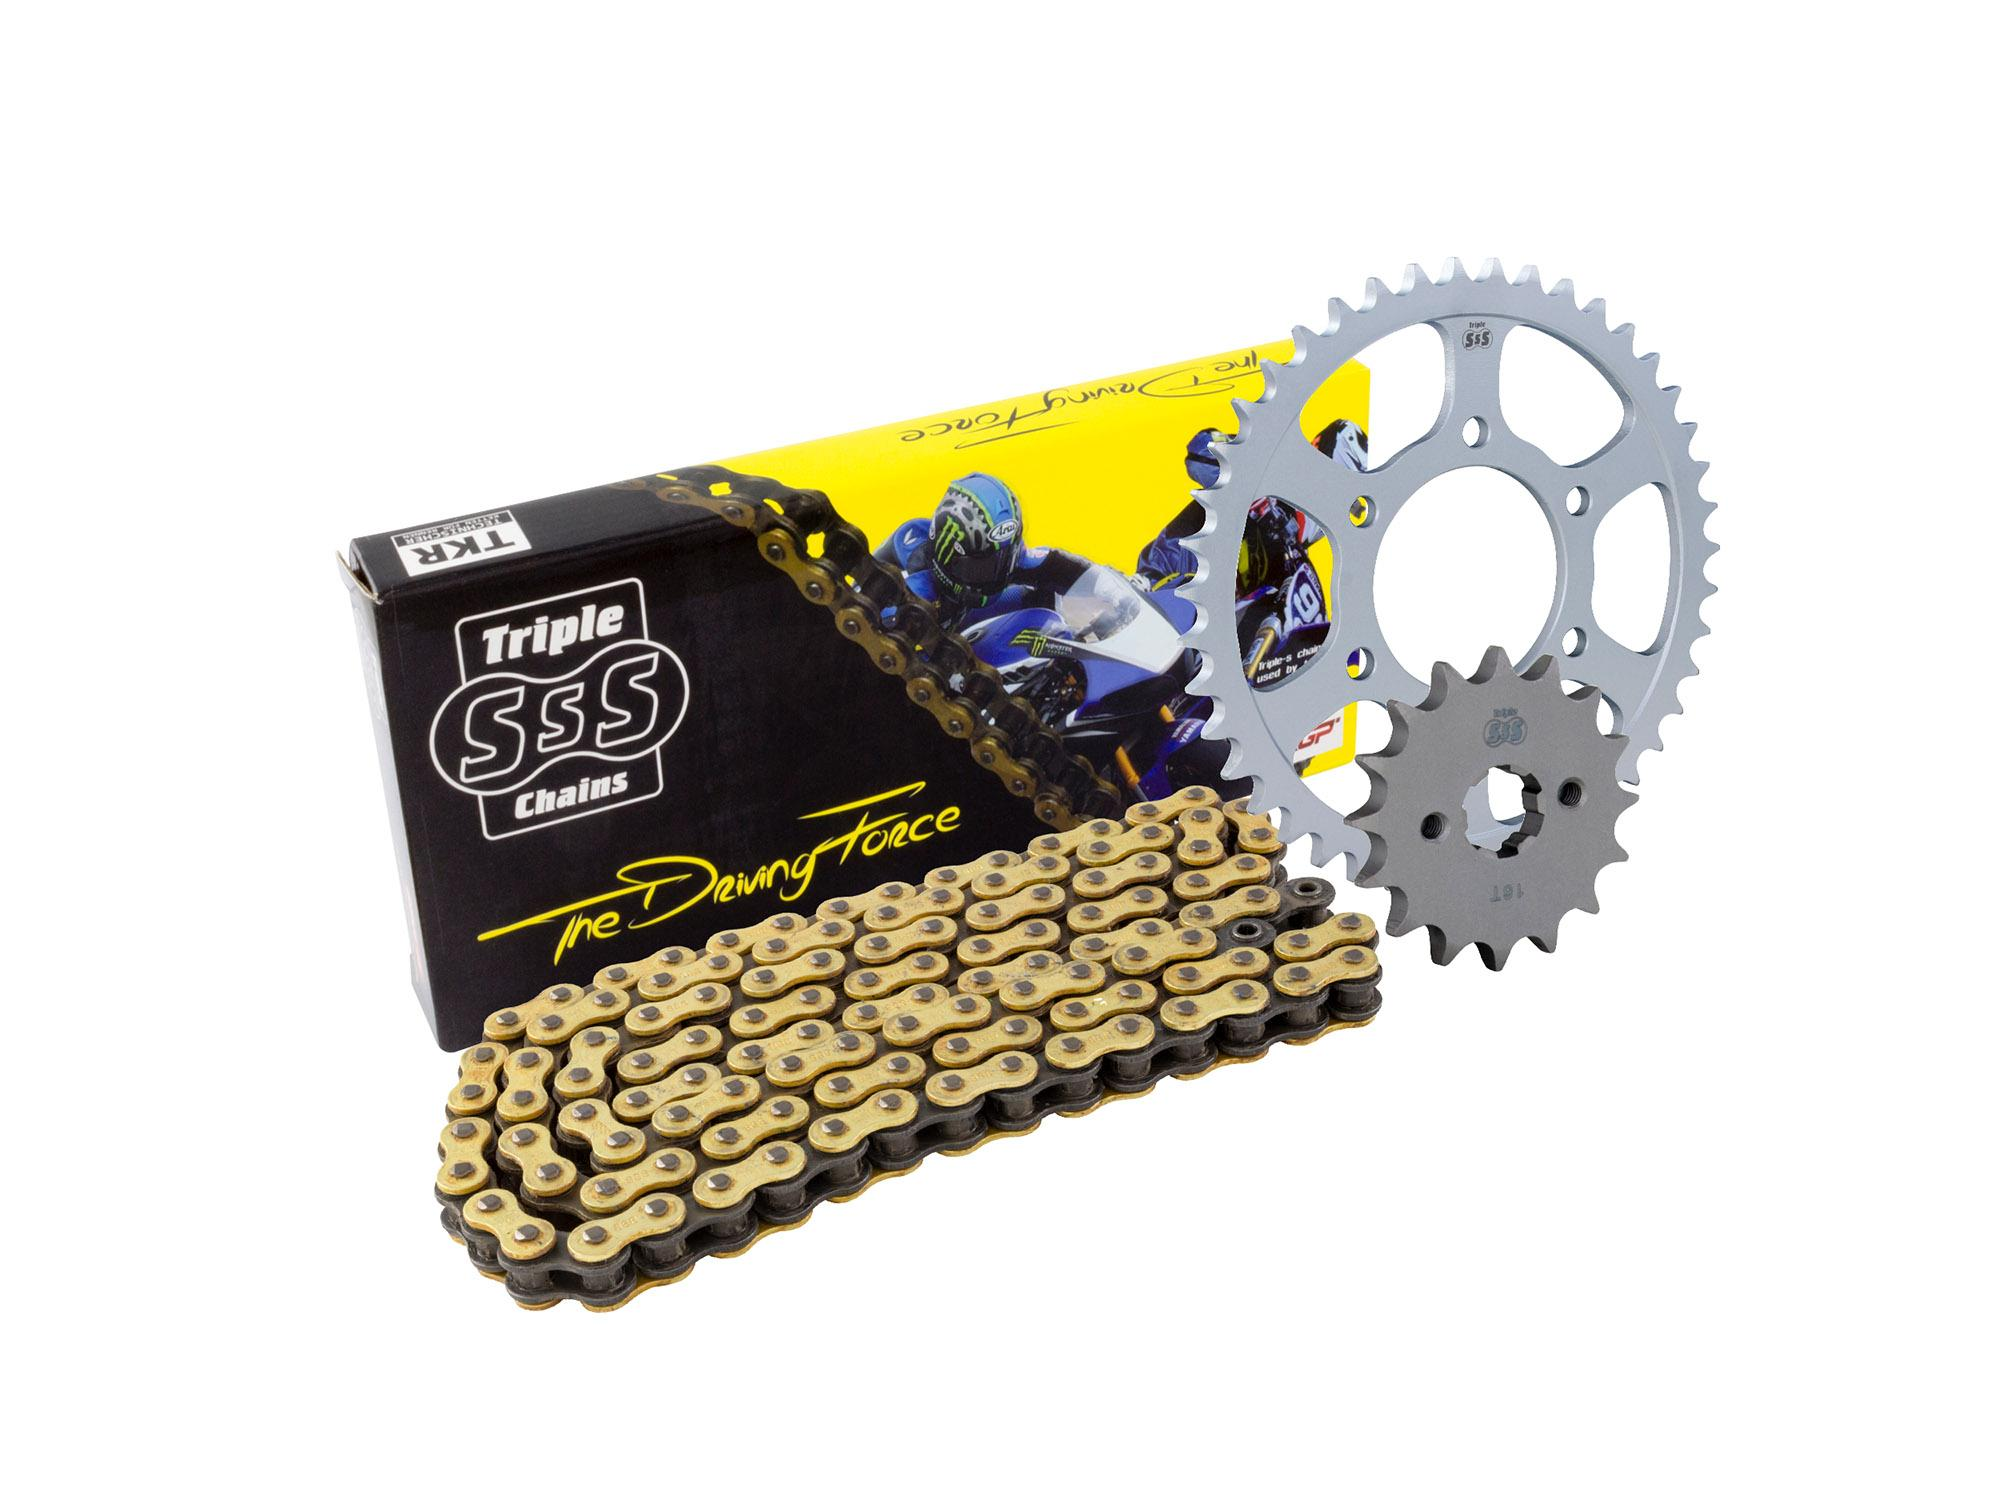 Suzuki GSX-R1000 K9/L0 09-10 Chain & Sprocket Kit: 17T Front, 42T Rear, HD O-Ring Gold Chain 530H 114 Link